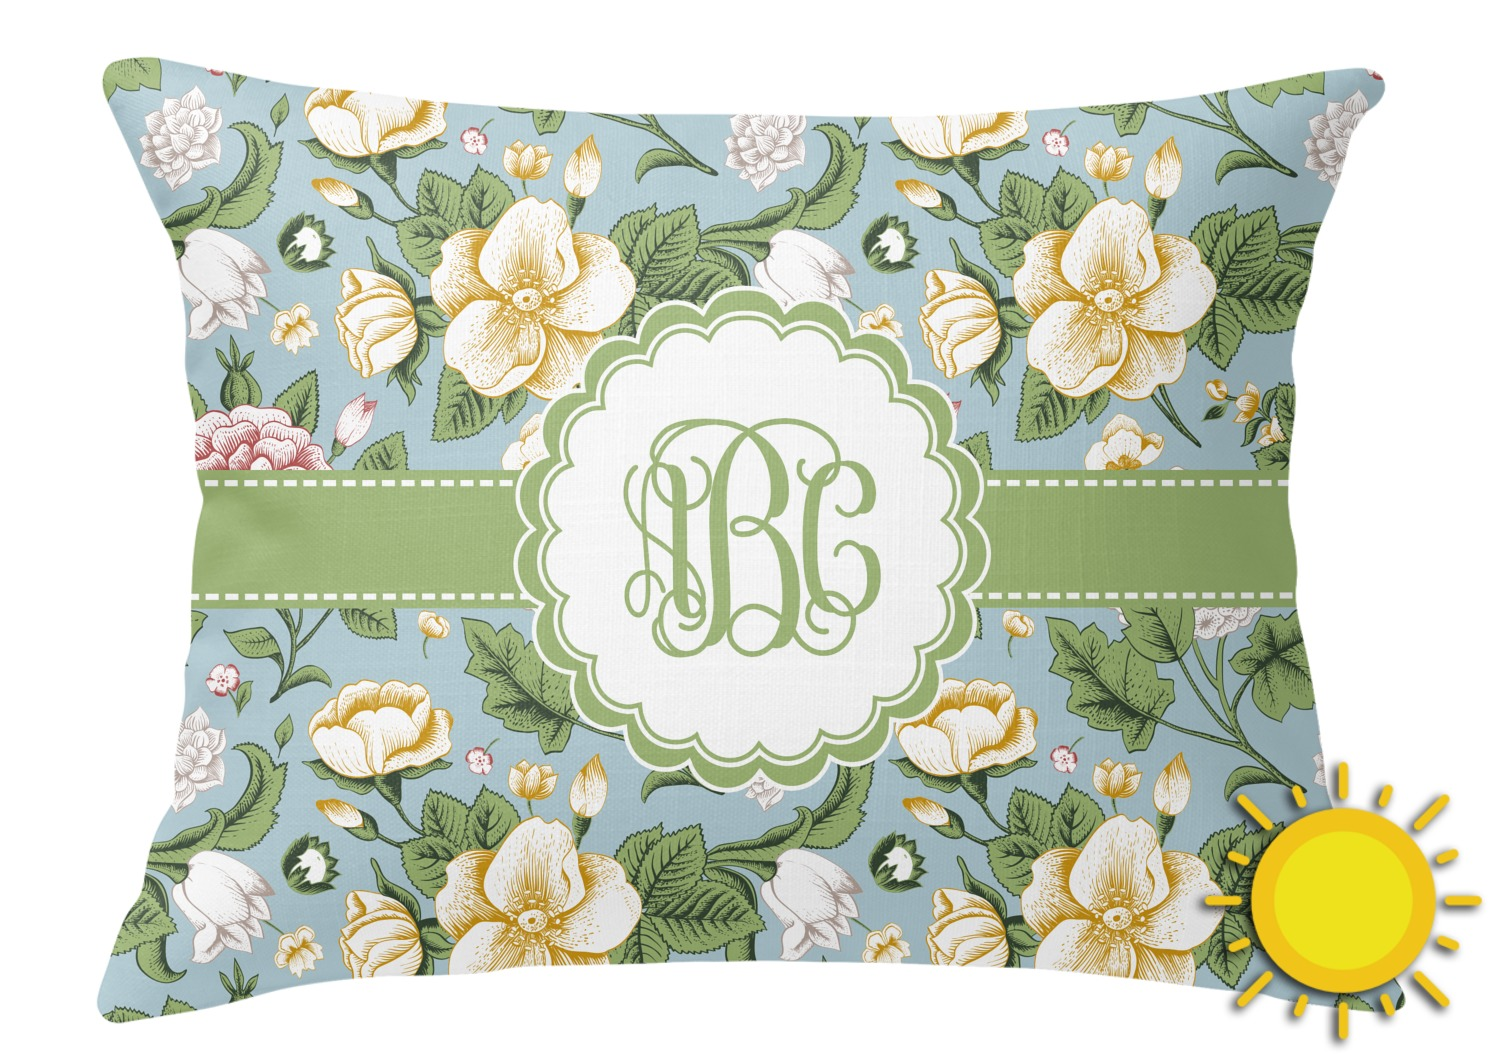 Vintage Looking Throw Pillows : Vintage Floral Outdoor Throw Pillow (Rectangular) (Personalized) - YouCustomizeIt